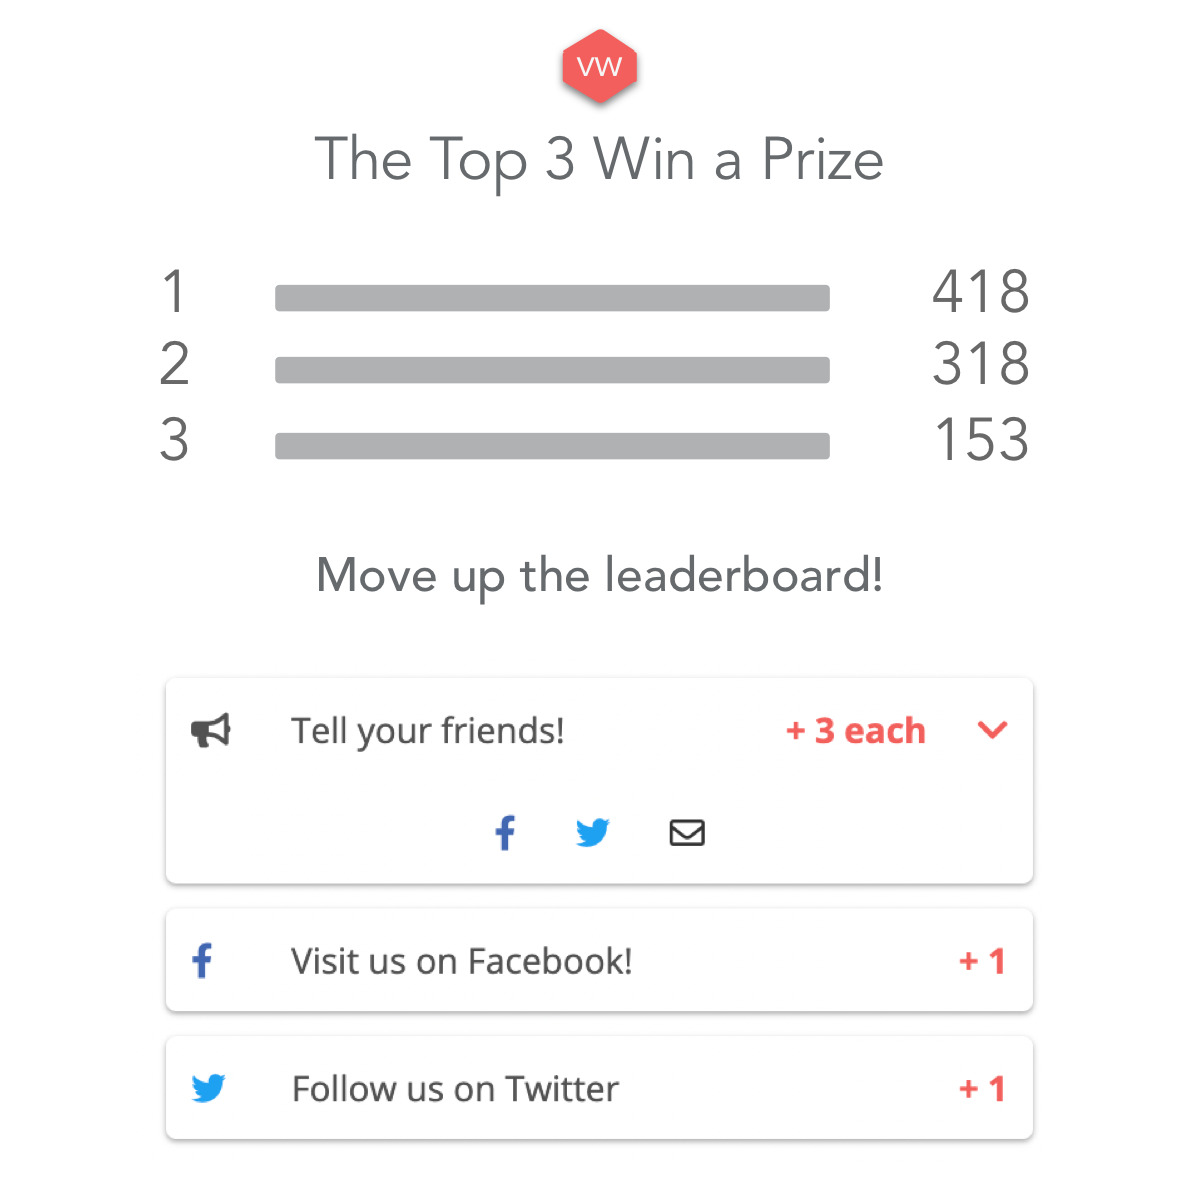 A leaderboard based on earned contest points.